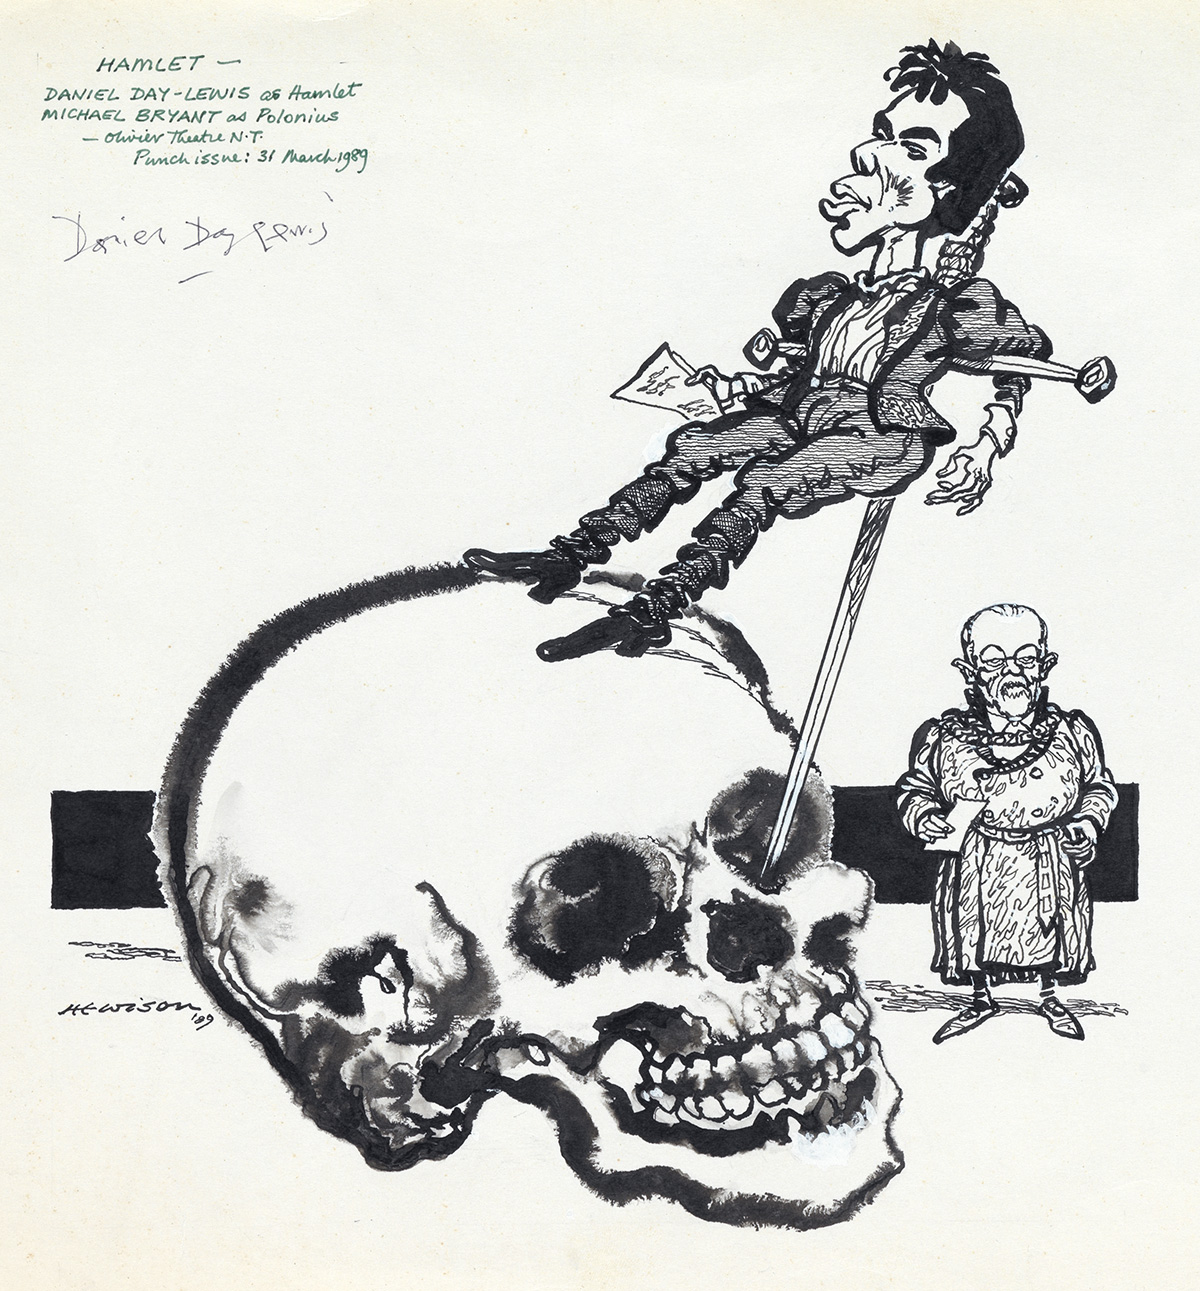 THEATER-SHAKESPEARE-WILLIAM-HEWISON-Daniel-Day-Lewis-as-Hamlet